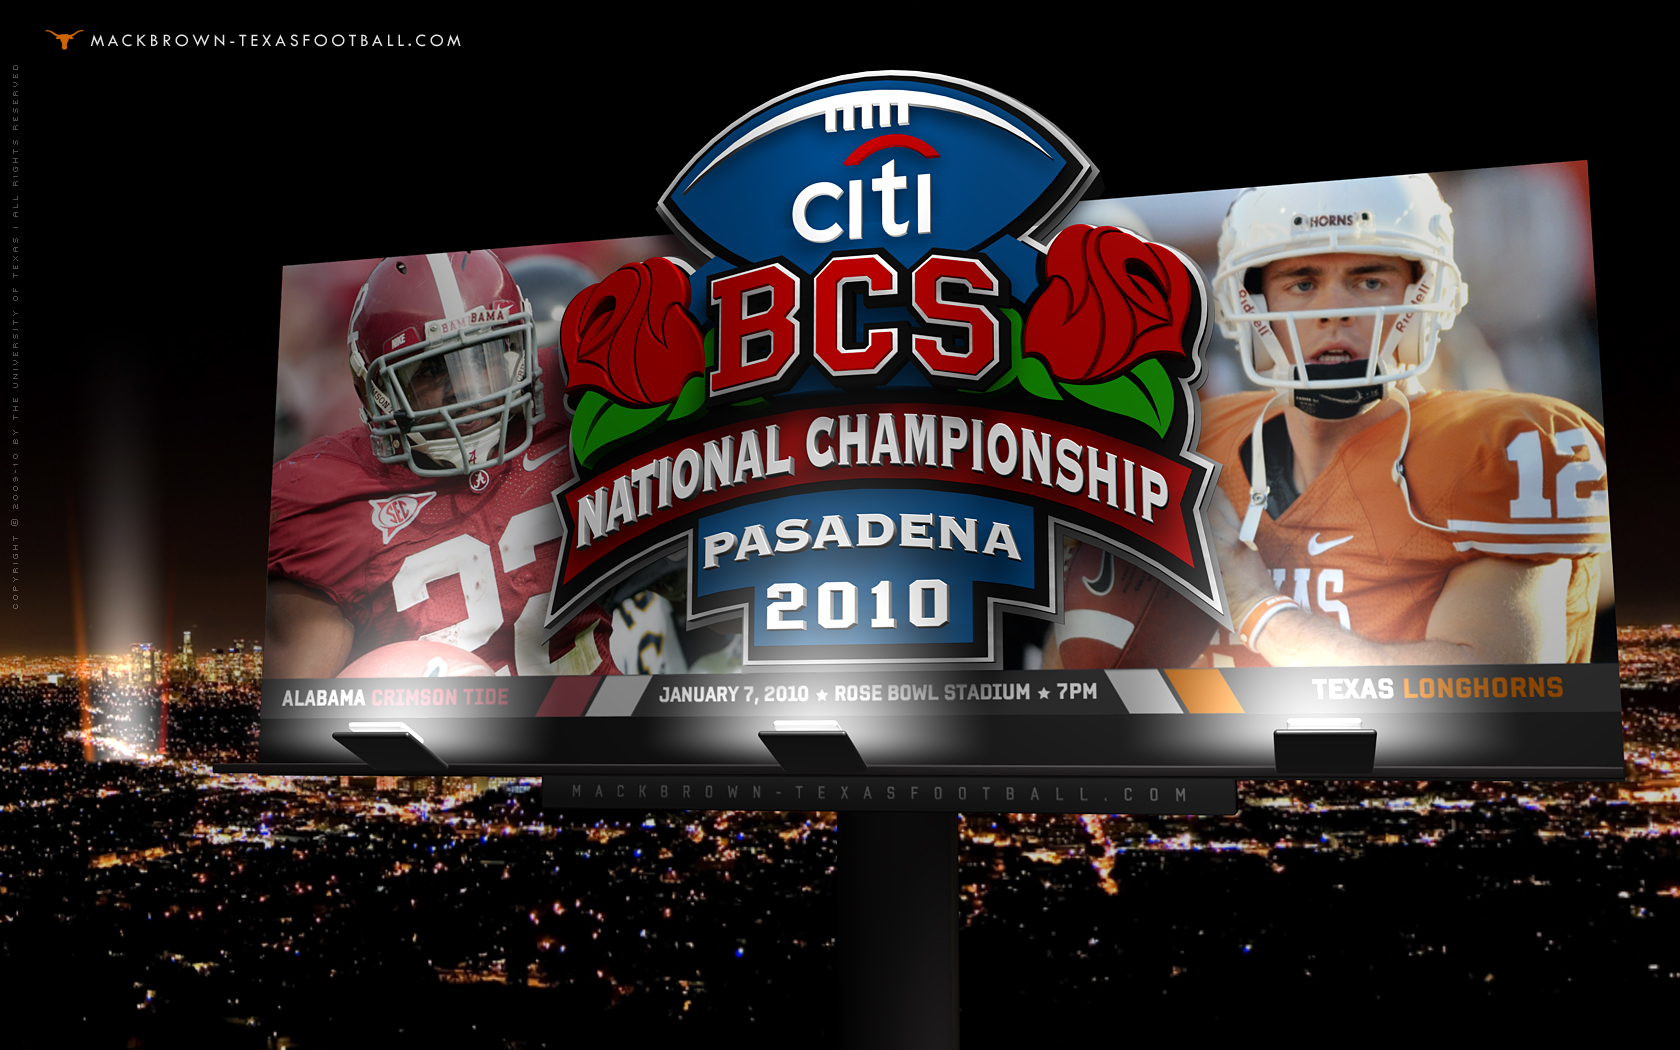 Alabama Football Championships Wallpaper Bcs championship game 1 1680x1050